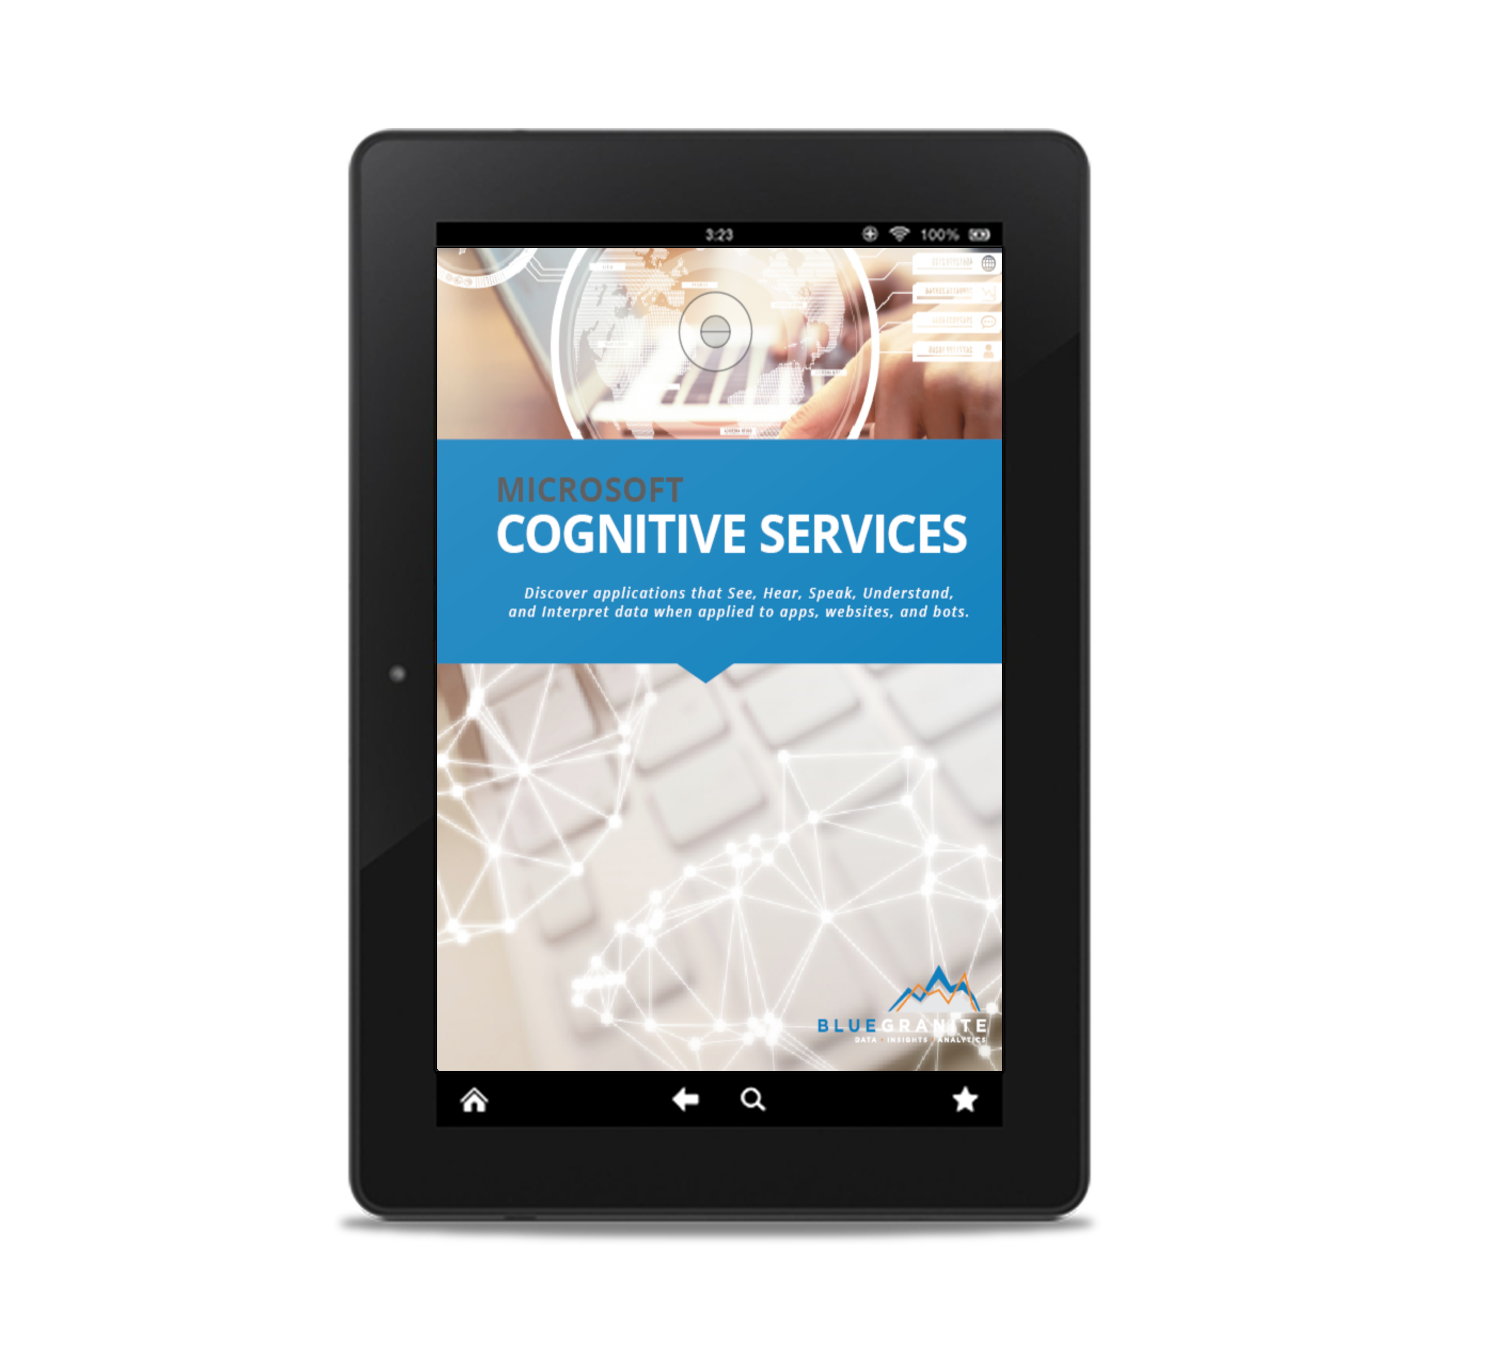 microsoft cognitive services ebook cover on tablet